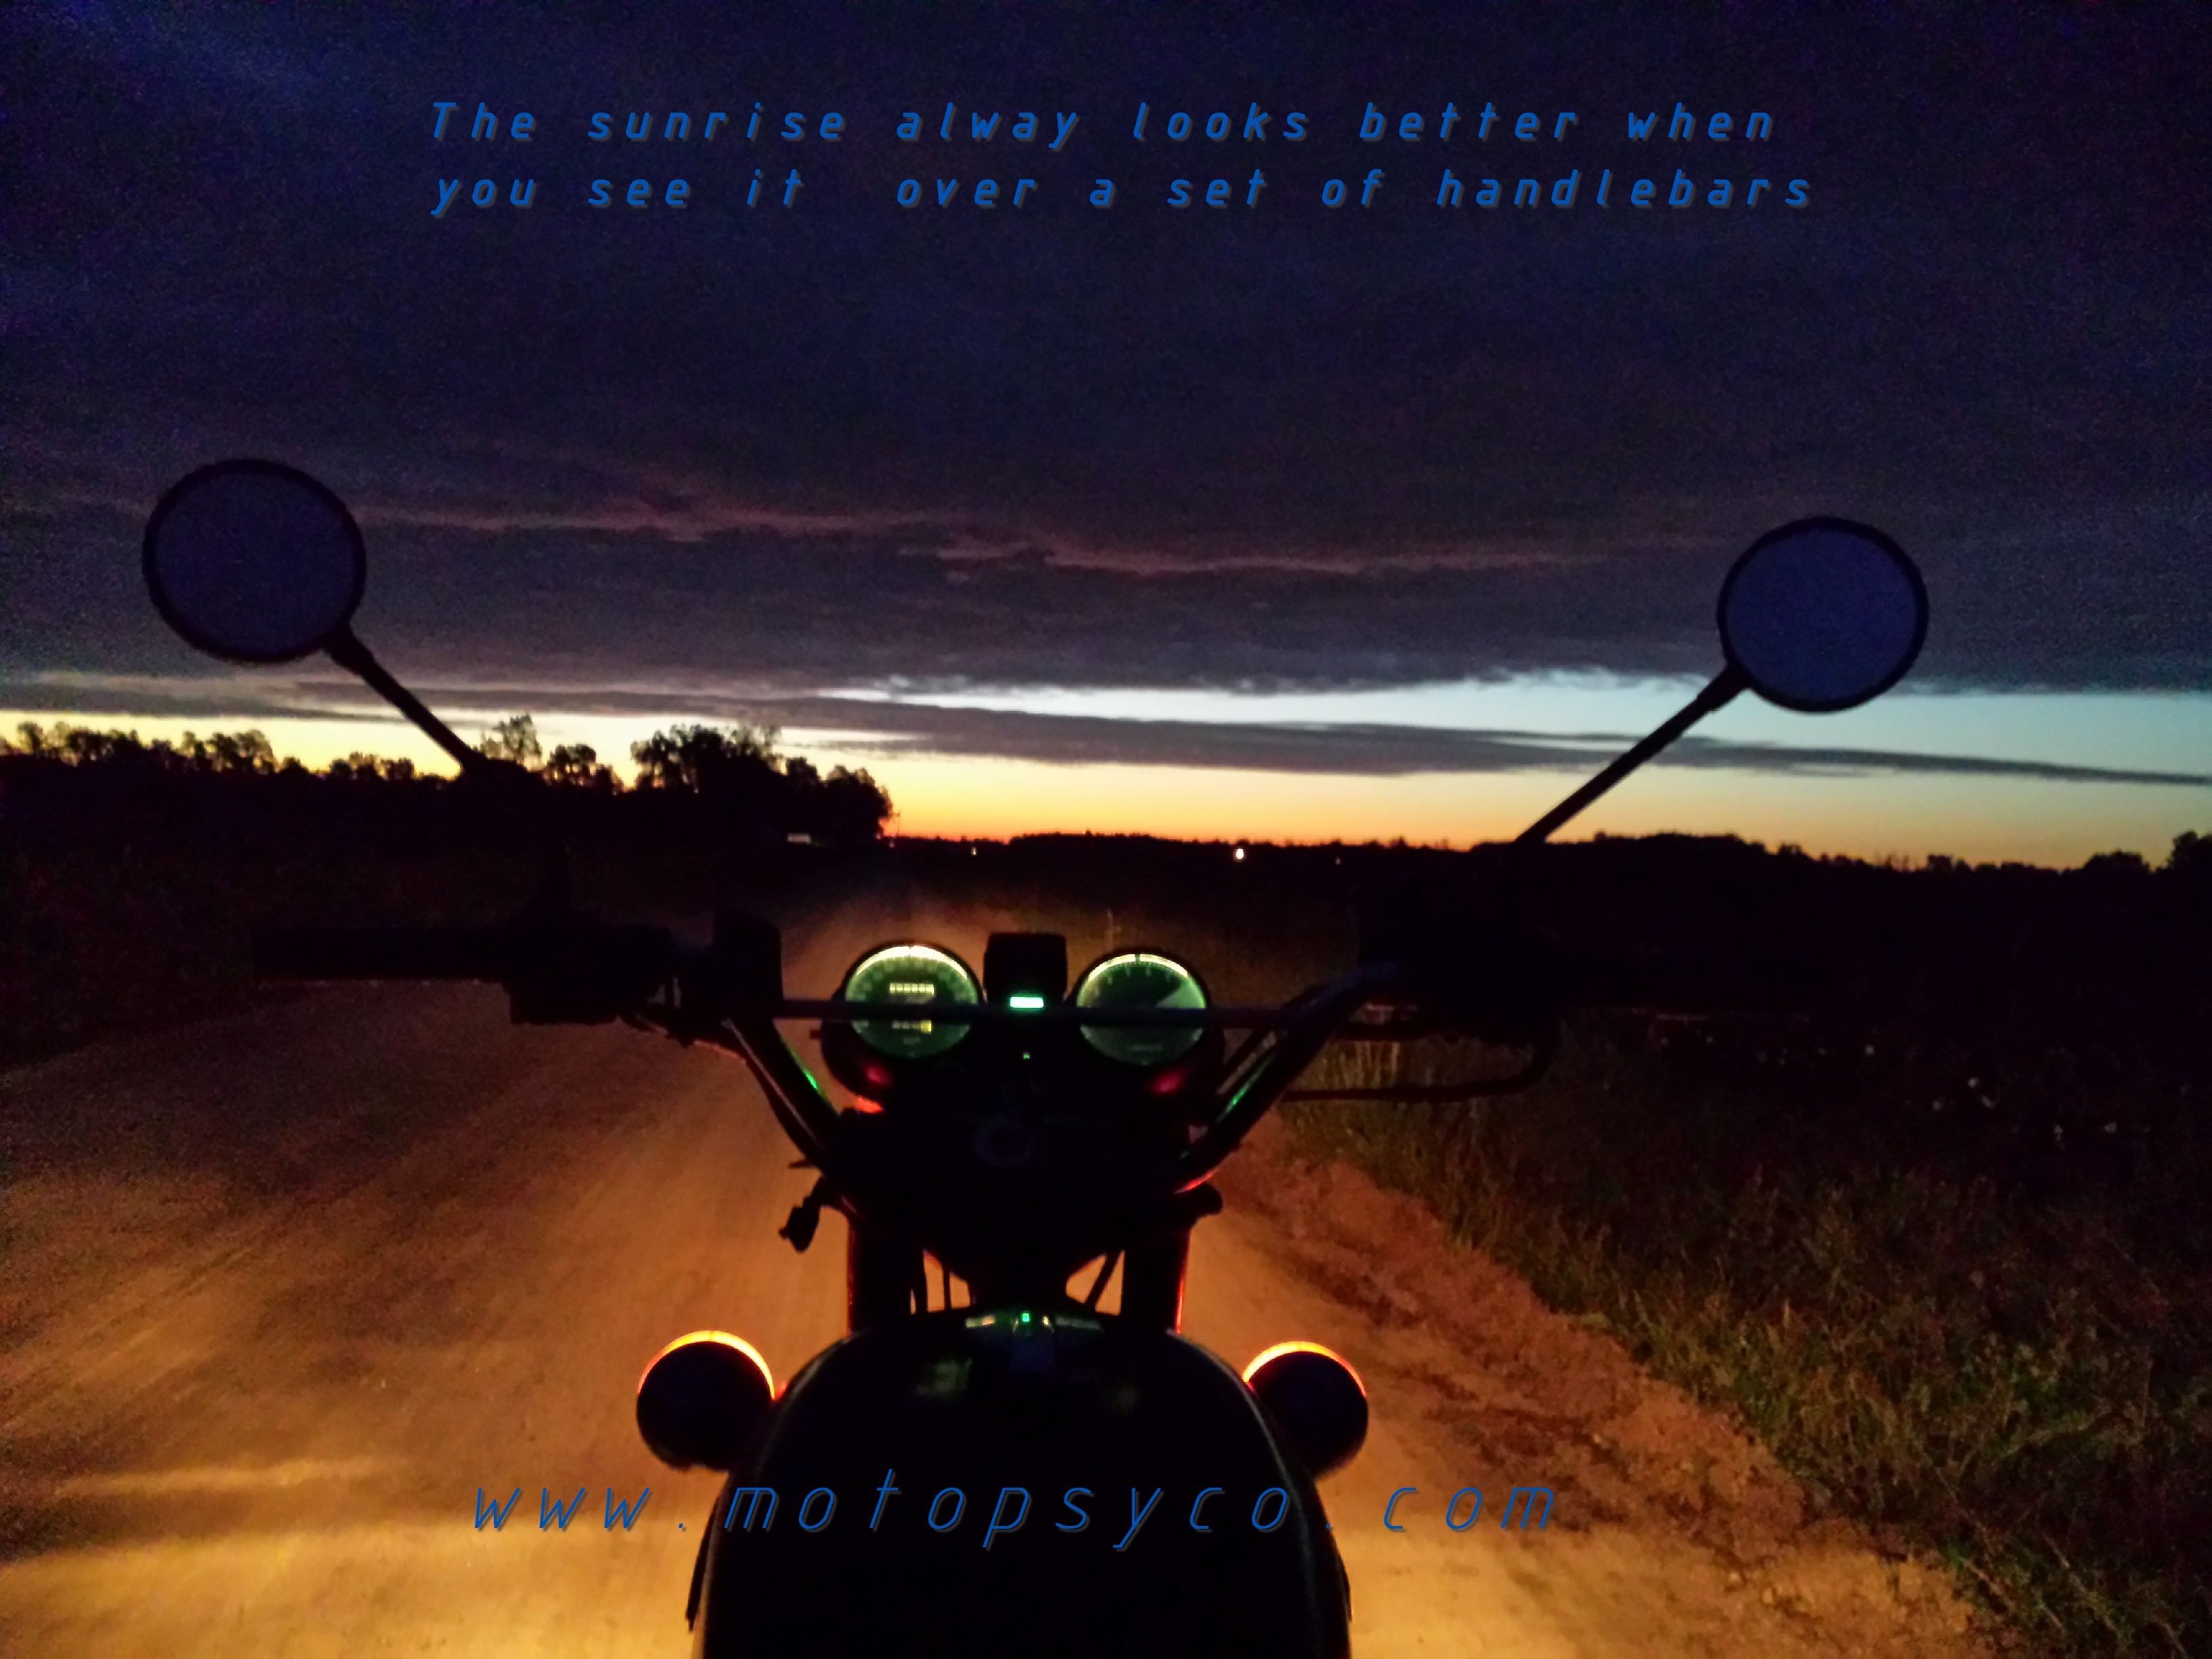 The Best Sunrise! - Motopsyco's Asylum Crazy about ...